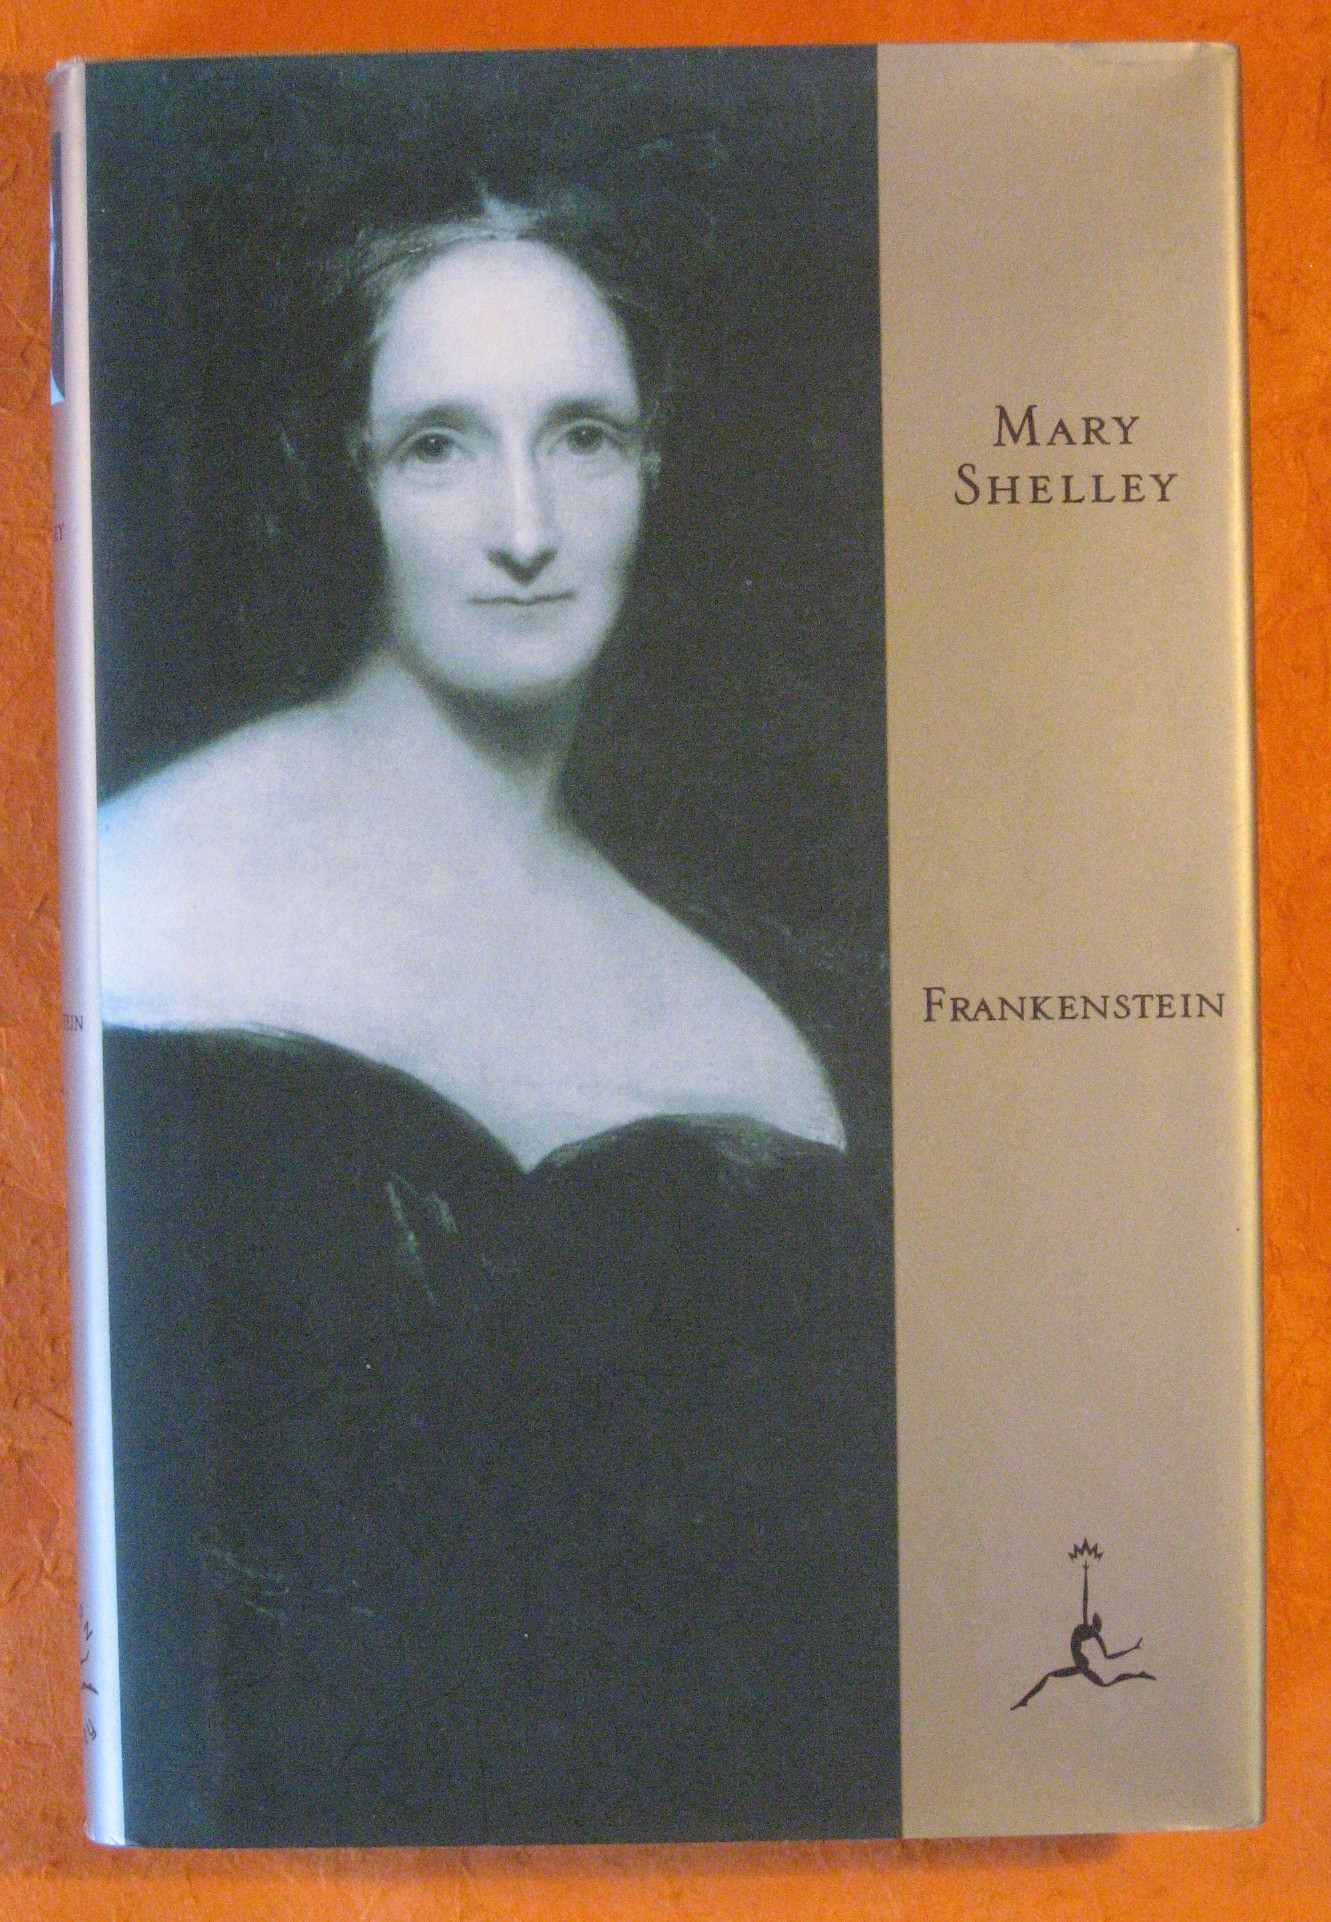 Frankenstein: or, The Modern Prometheus (Modern Library), Shelley, Mary